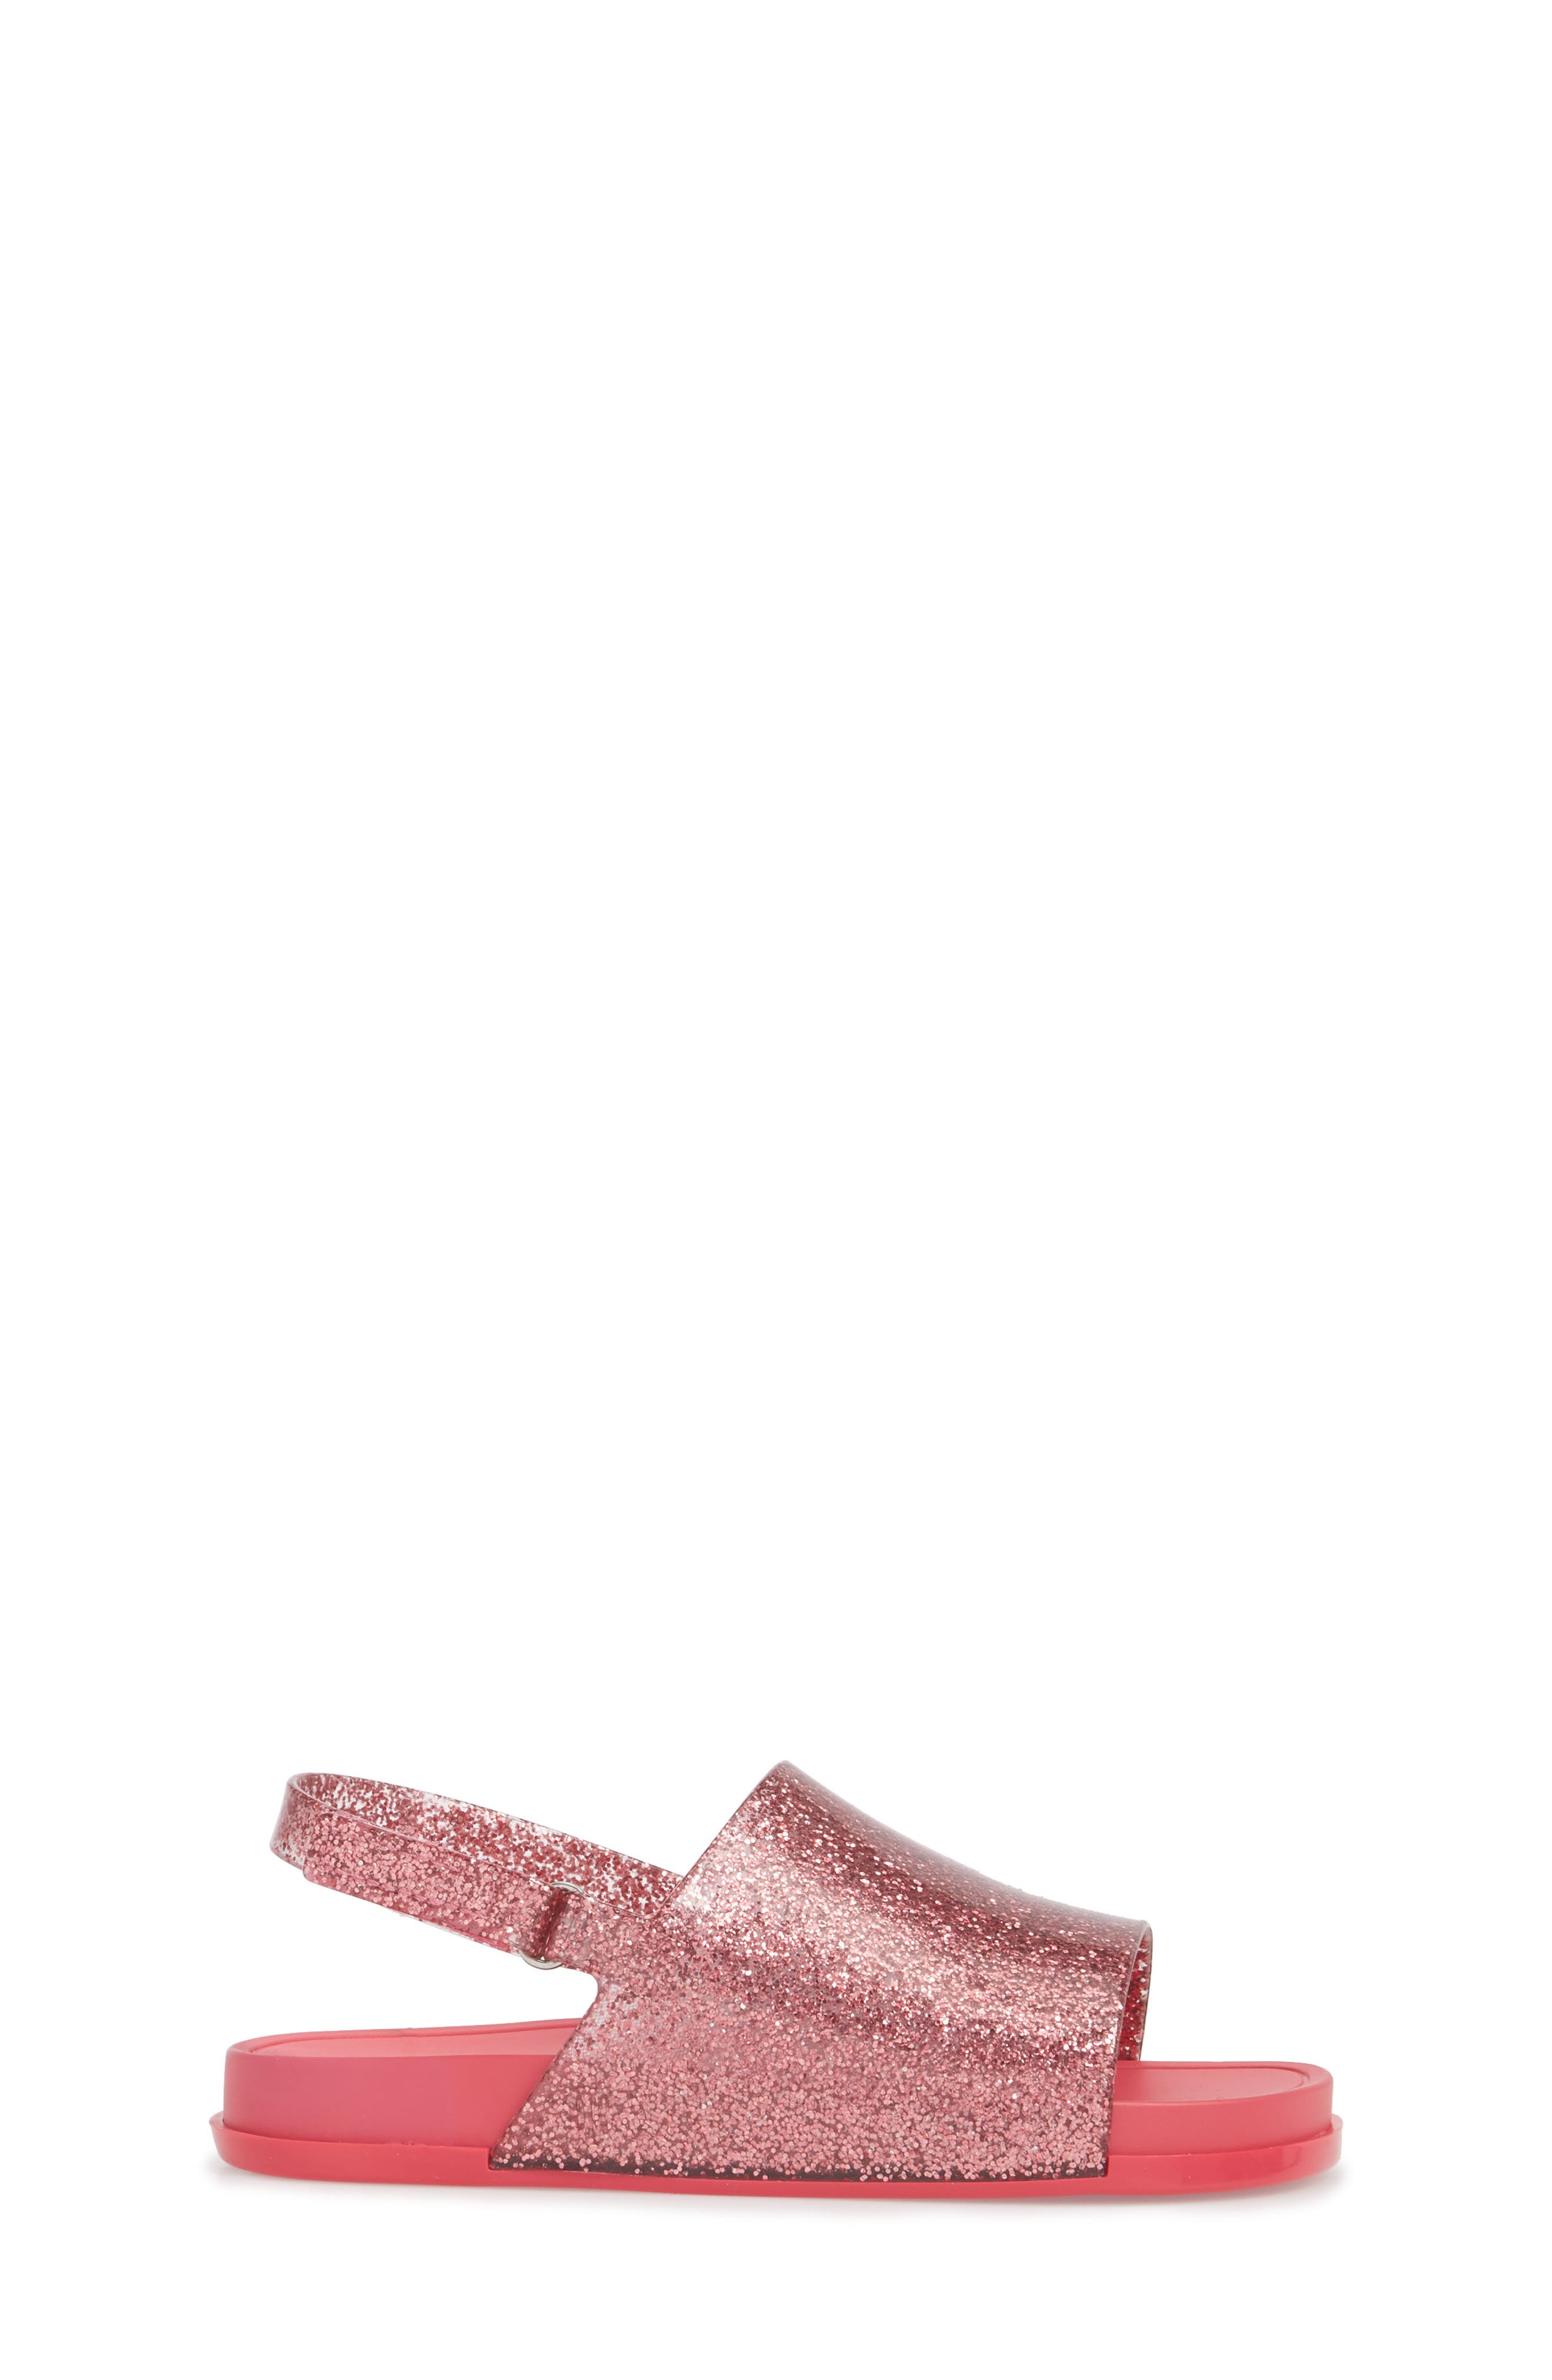 Mini Beach Sandal,                             Alternate thumbnail 3, color,                             Pink Glitter